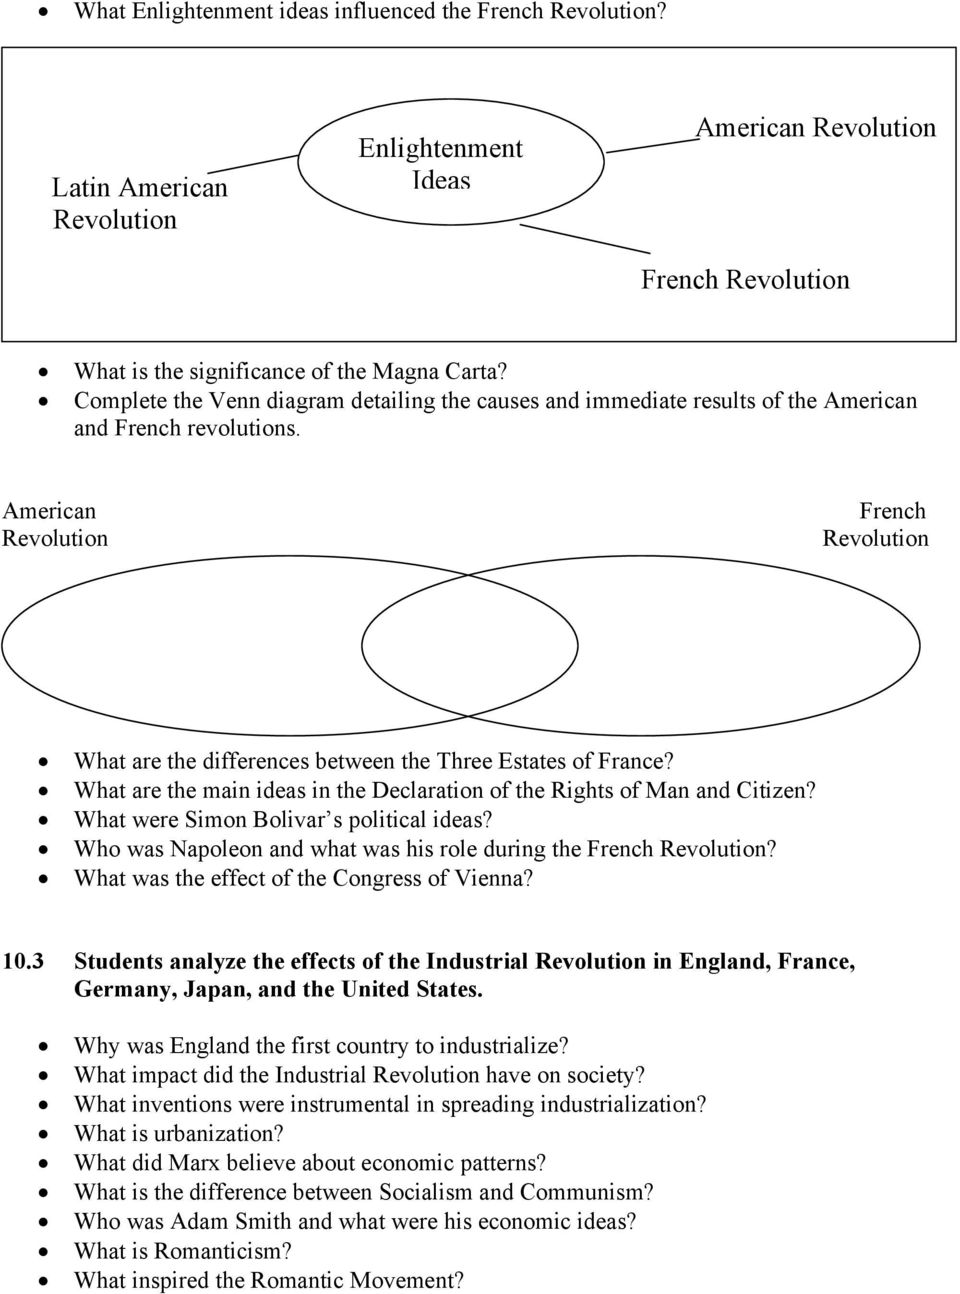 comparing the french and american revolution